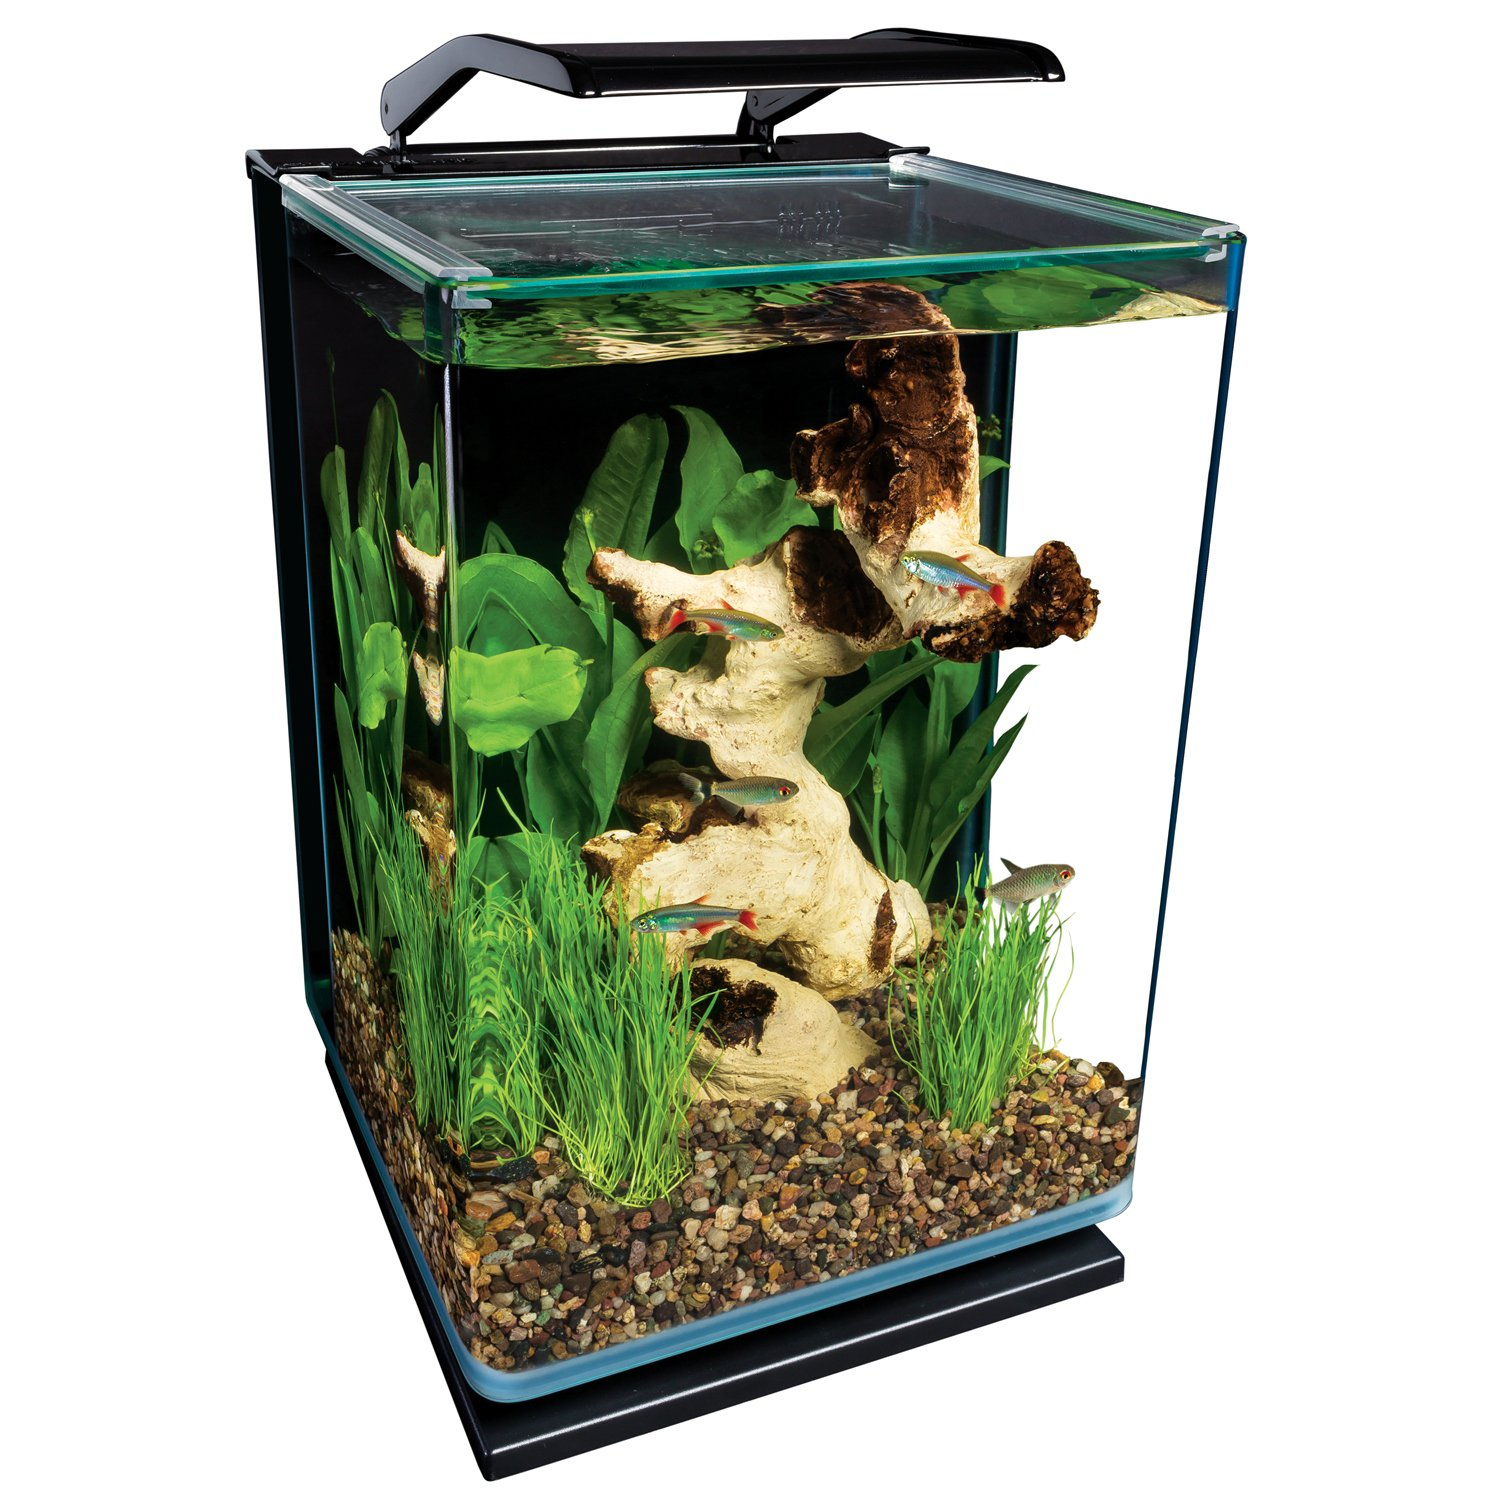 Fish aquarium for sale in karachi - Marineland Portrait Glass Led Aquarium Kit